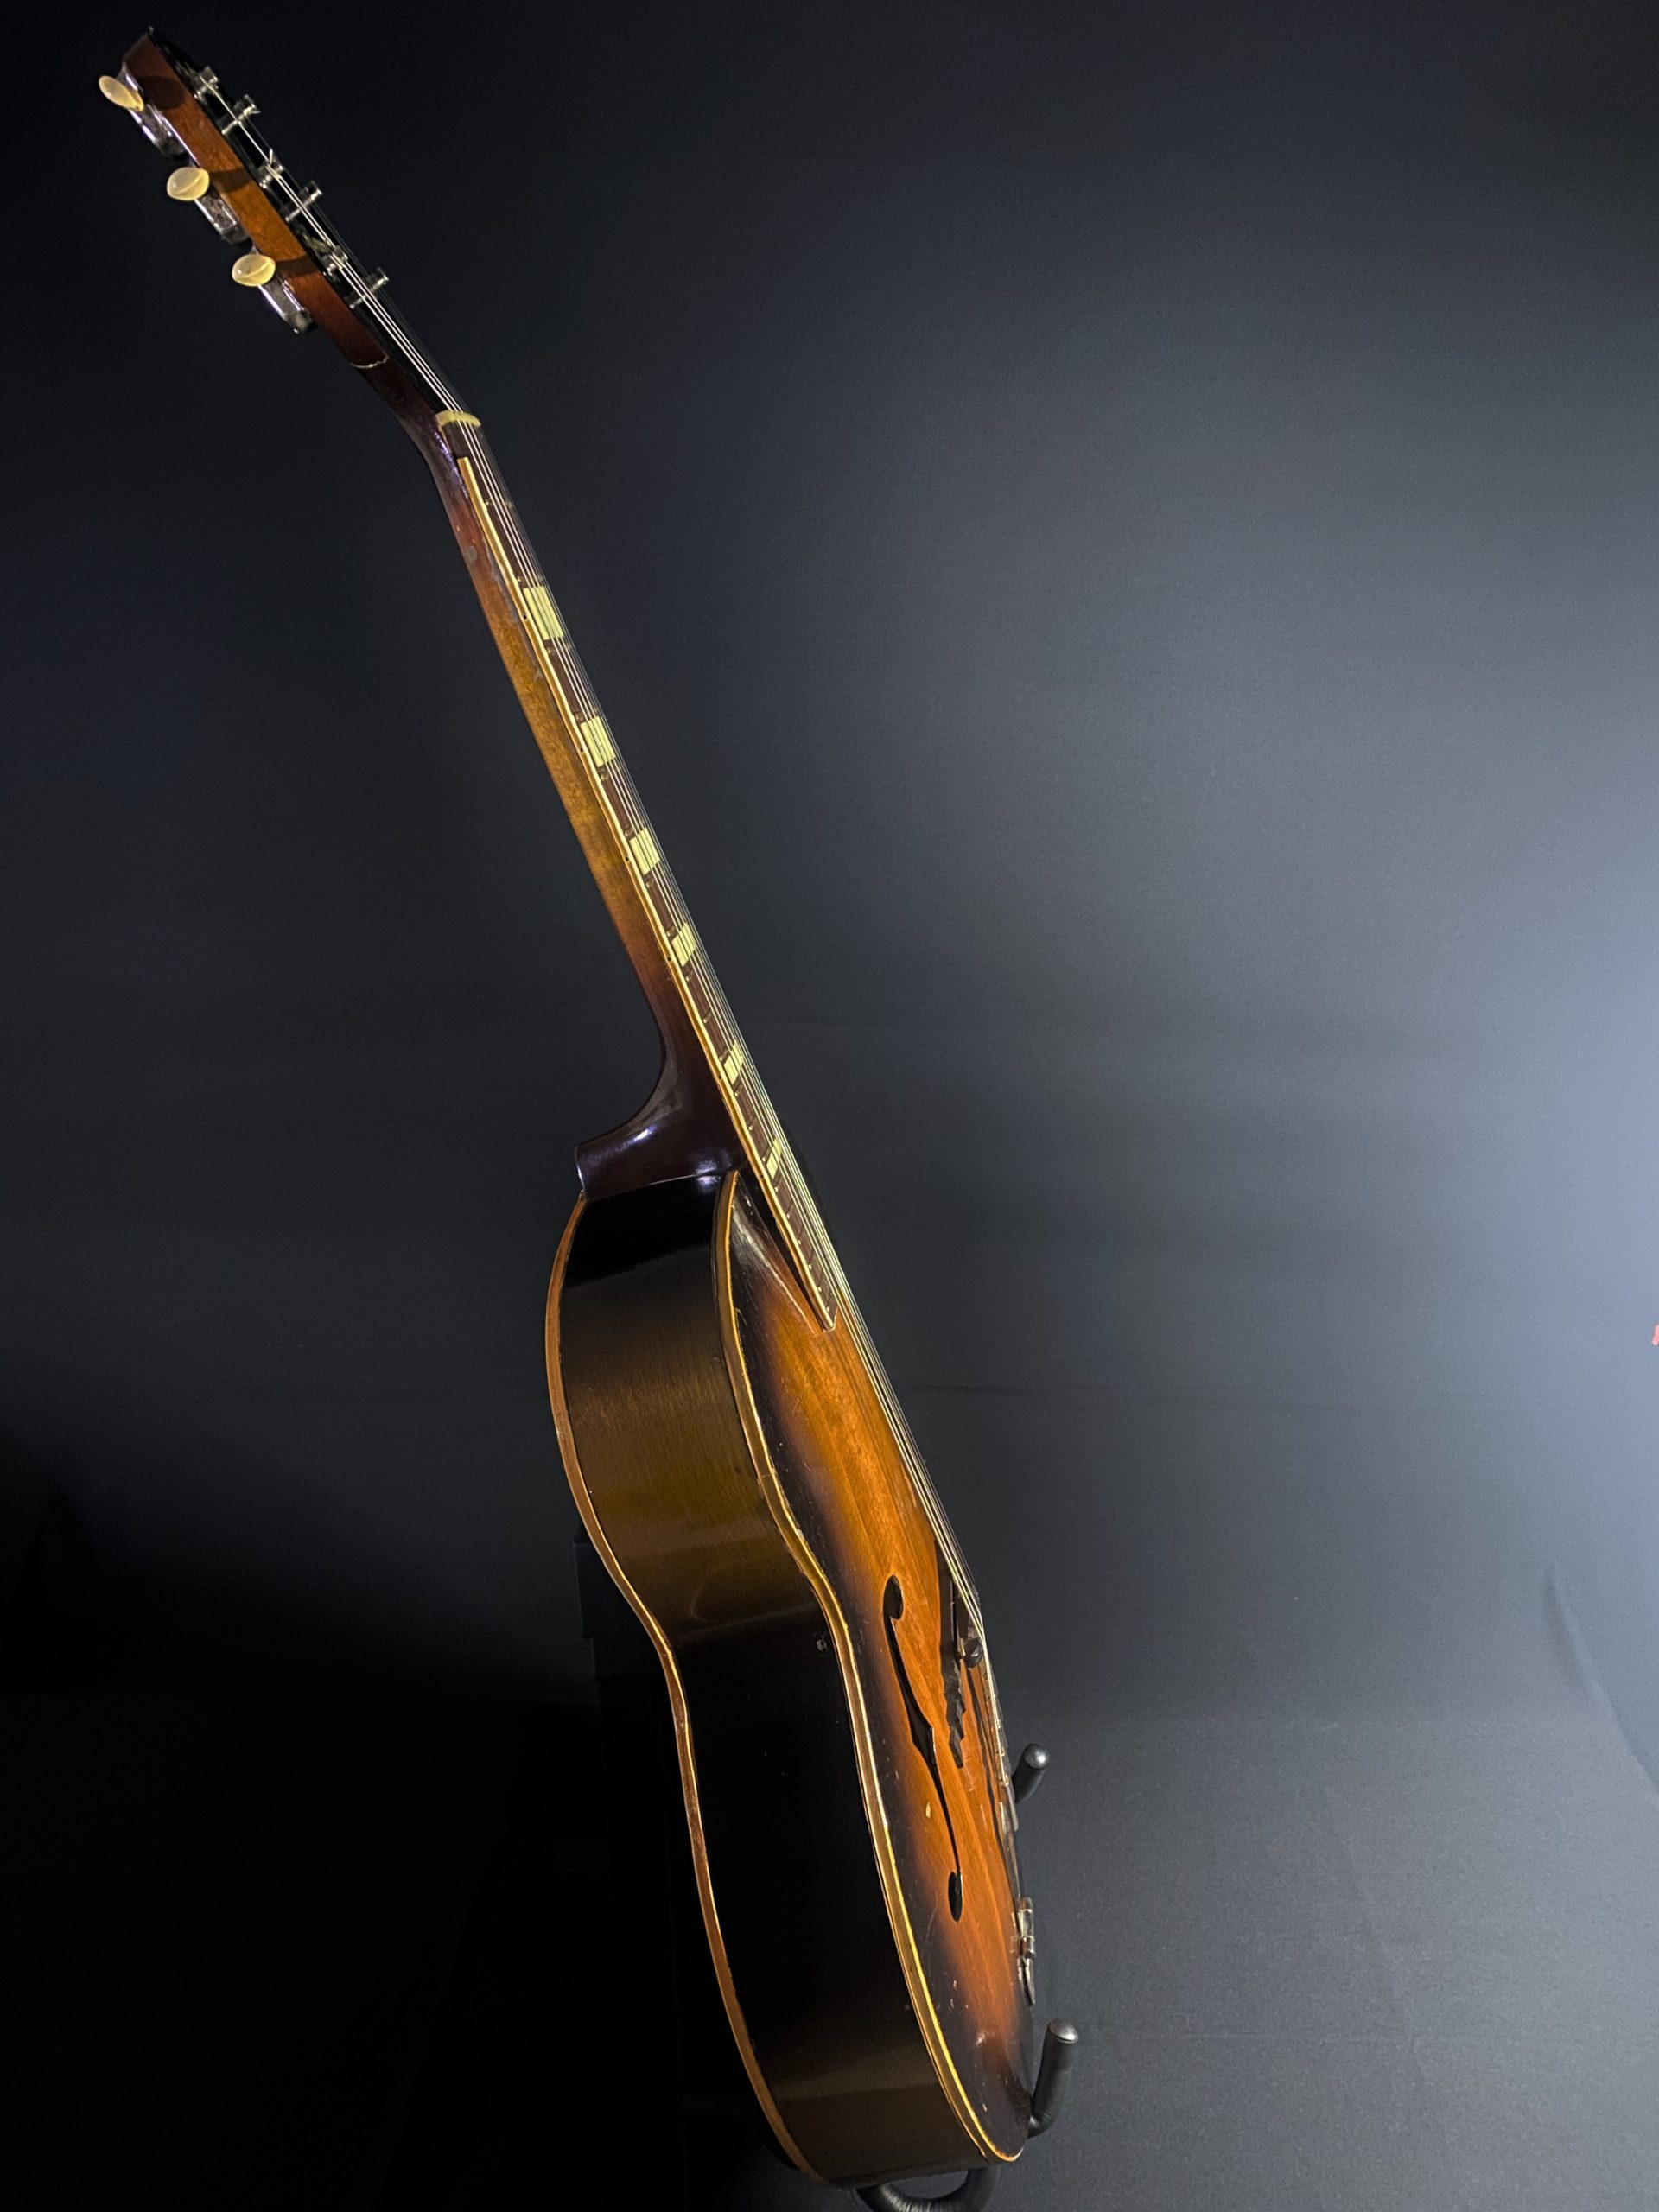 1952 Gretsch Synchromatic Archtop Vintage Guitar 01